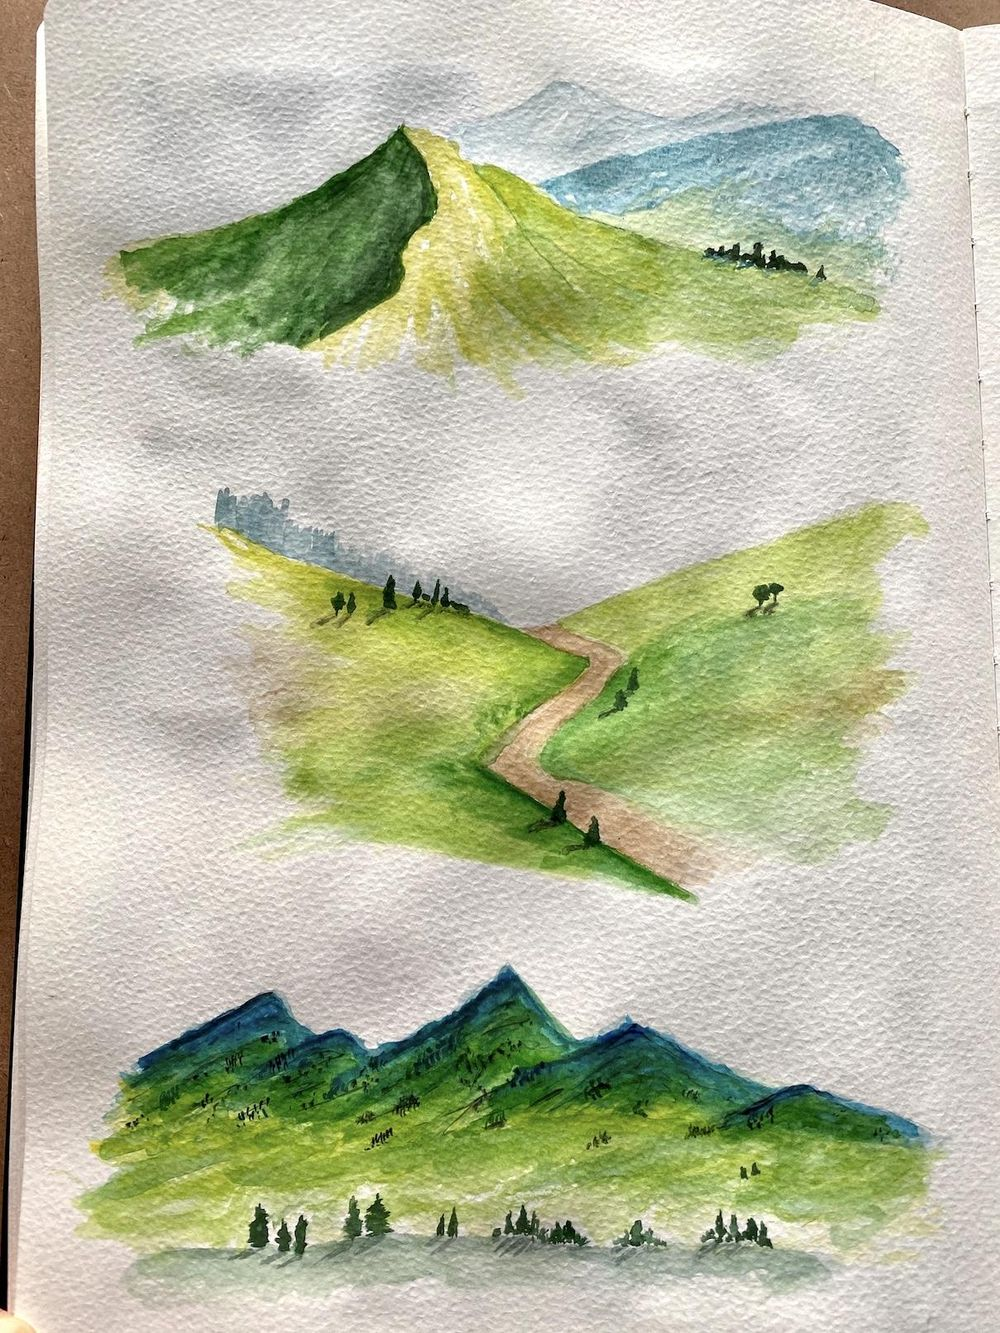 Watercolor landscapes - Z. Nabeel - image 3 - student project